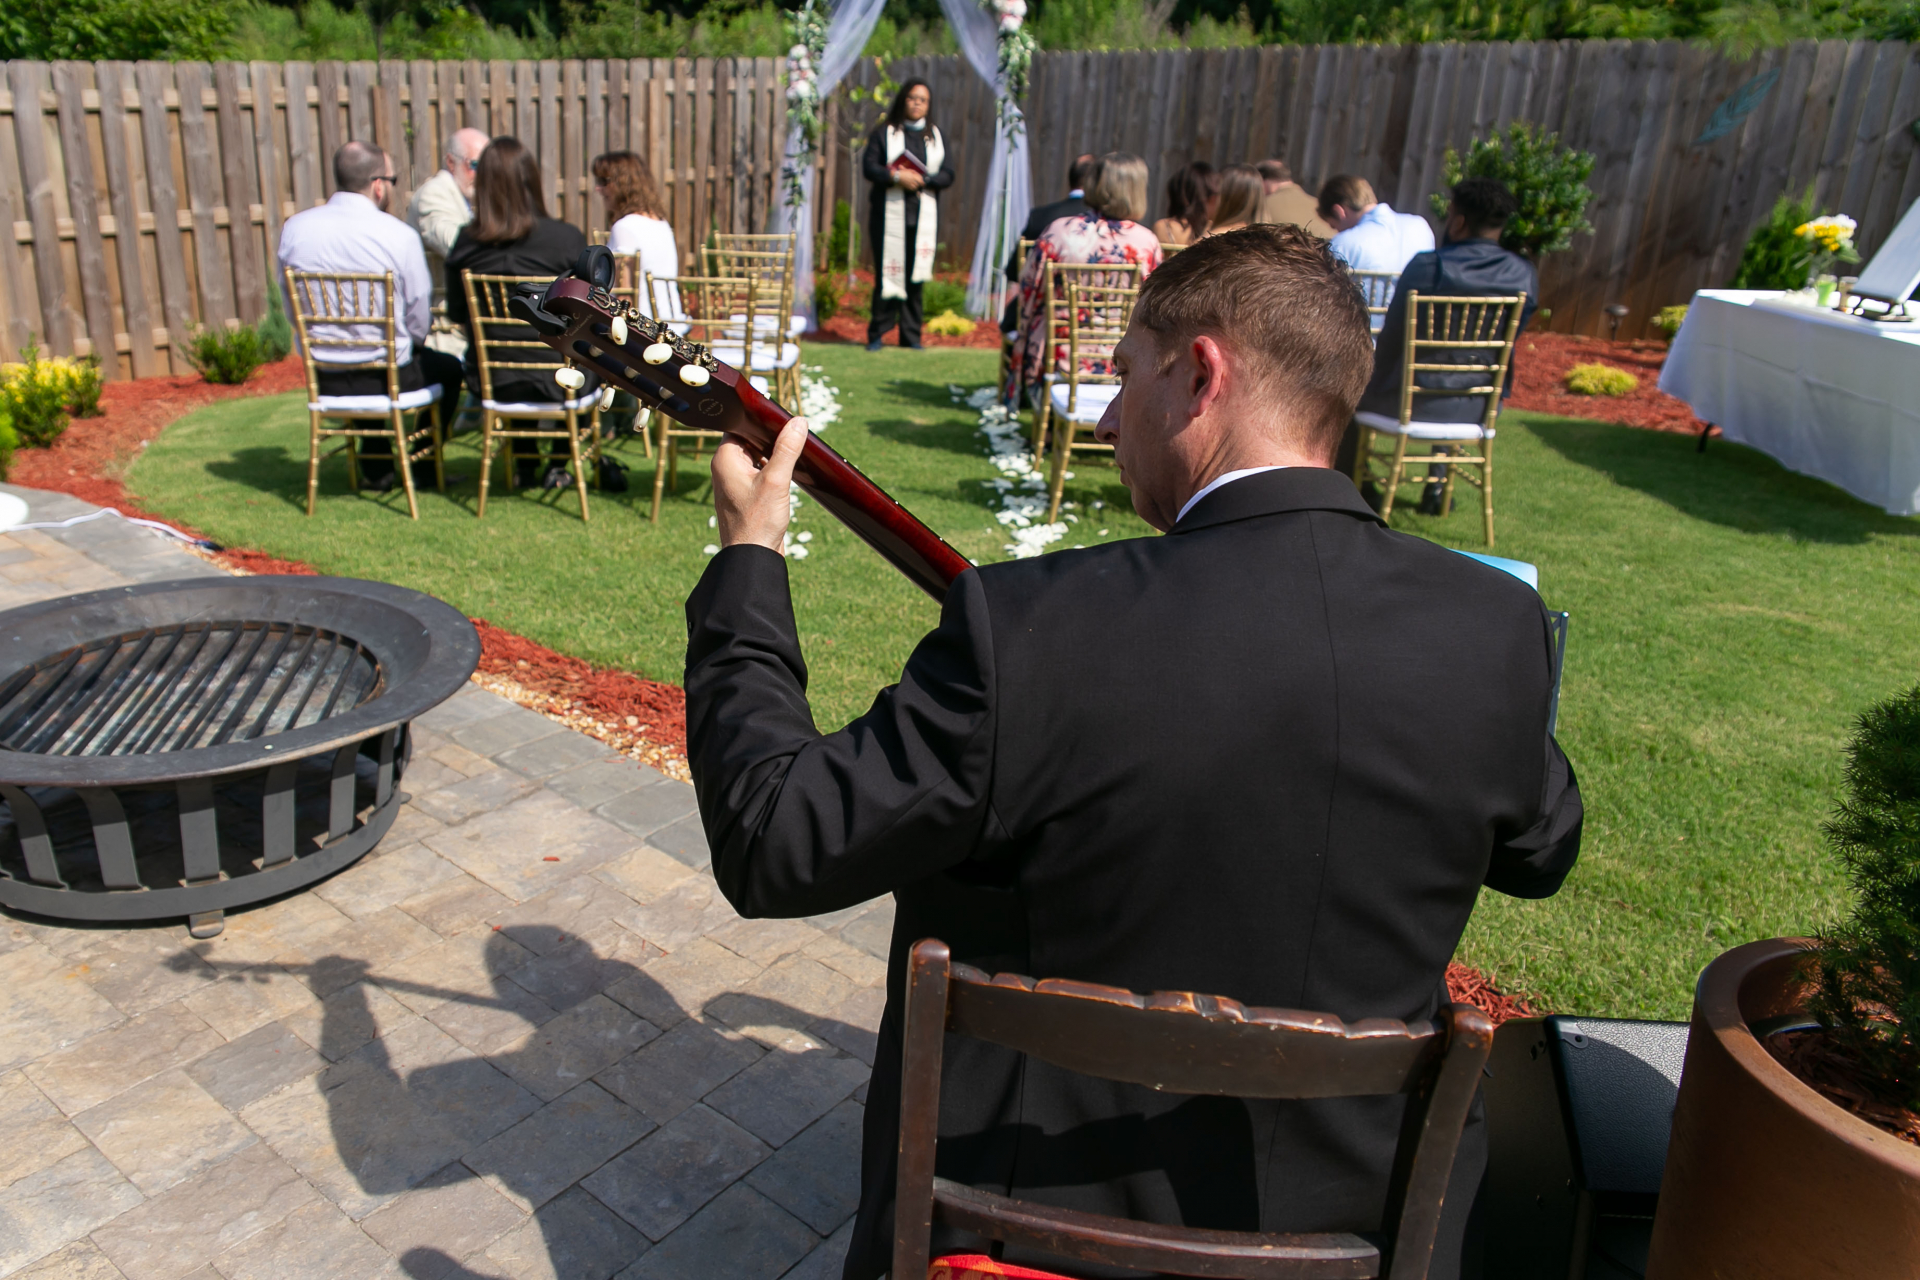 Backyard Elopement Ceremony Picture | A classical guitarist plays for guests